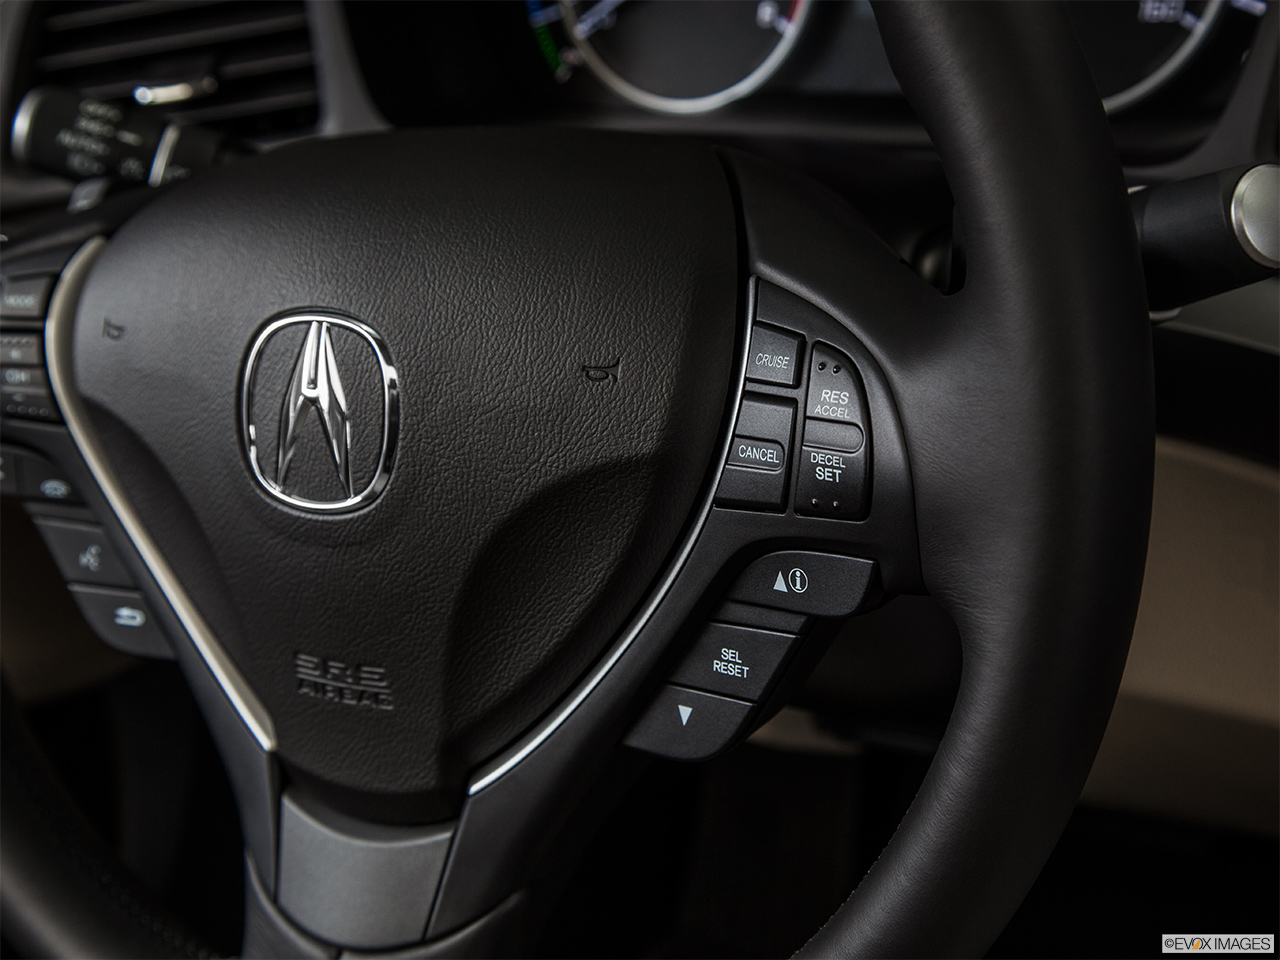 2014 Acura ILX Hybrid Base Steering Wheel Controls (Right Side)